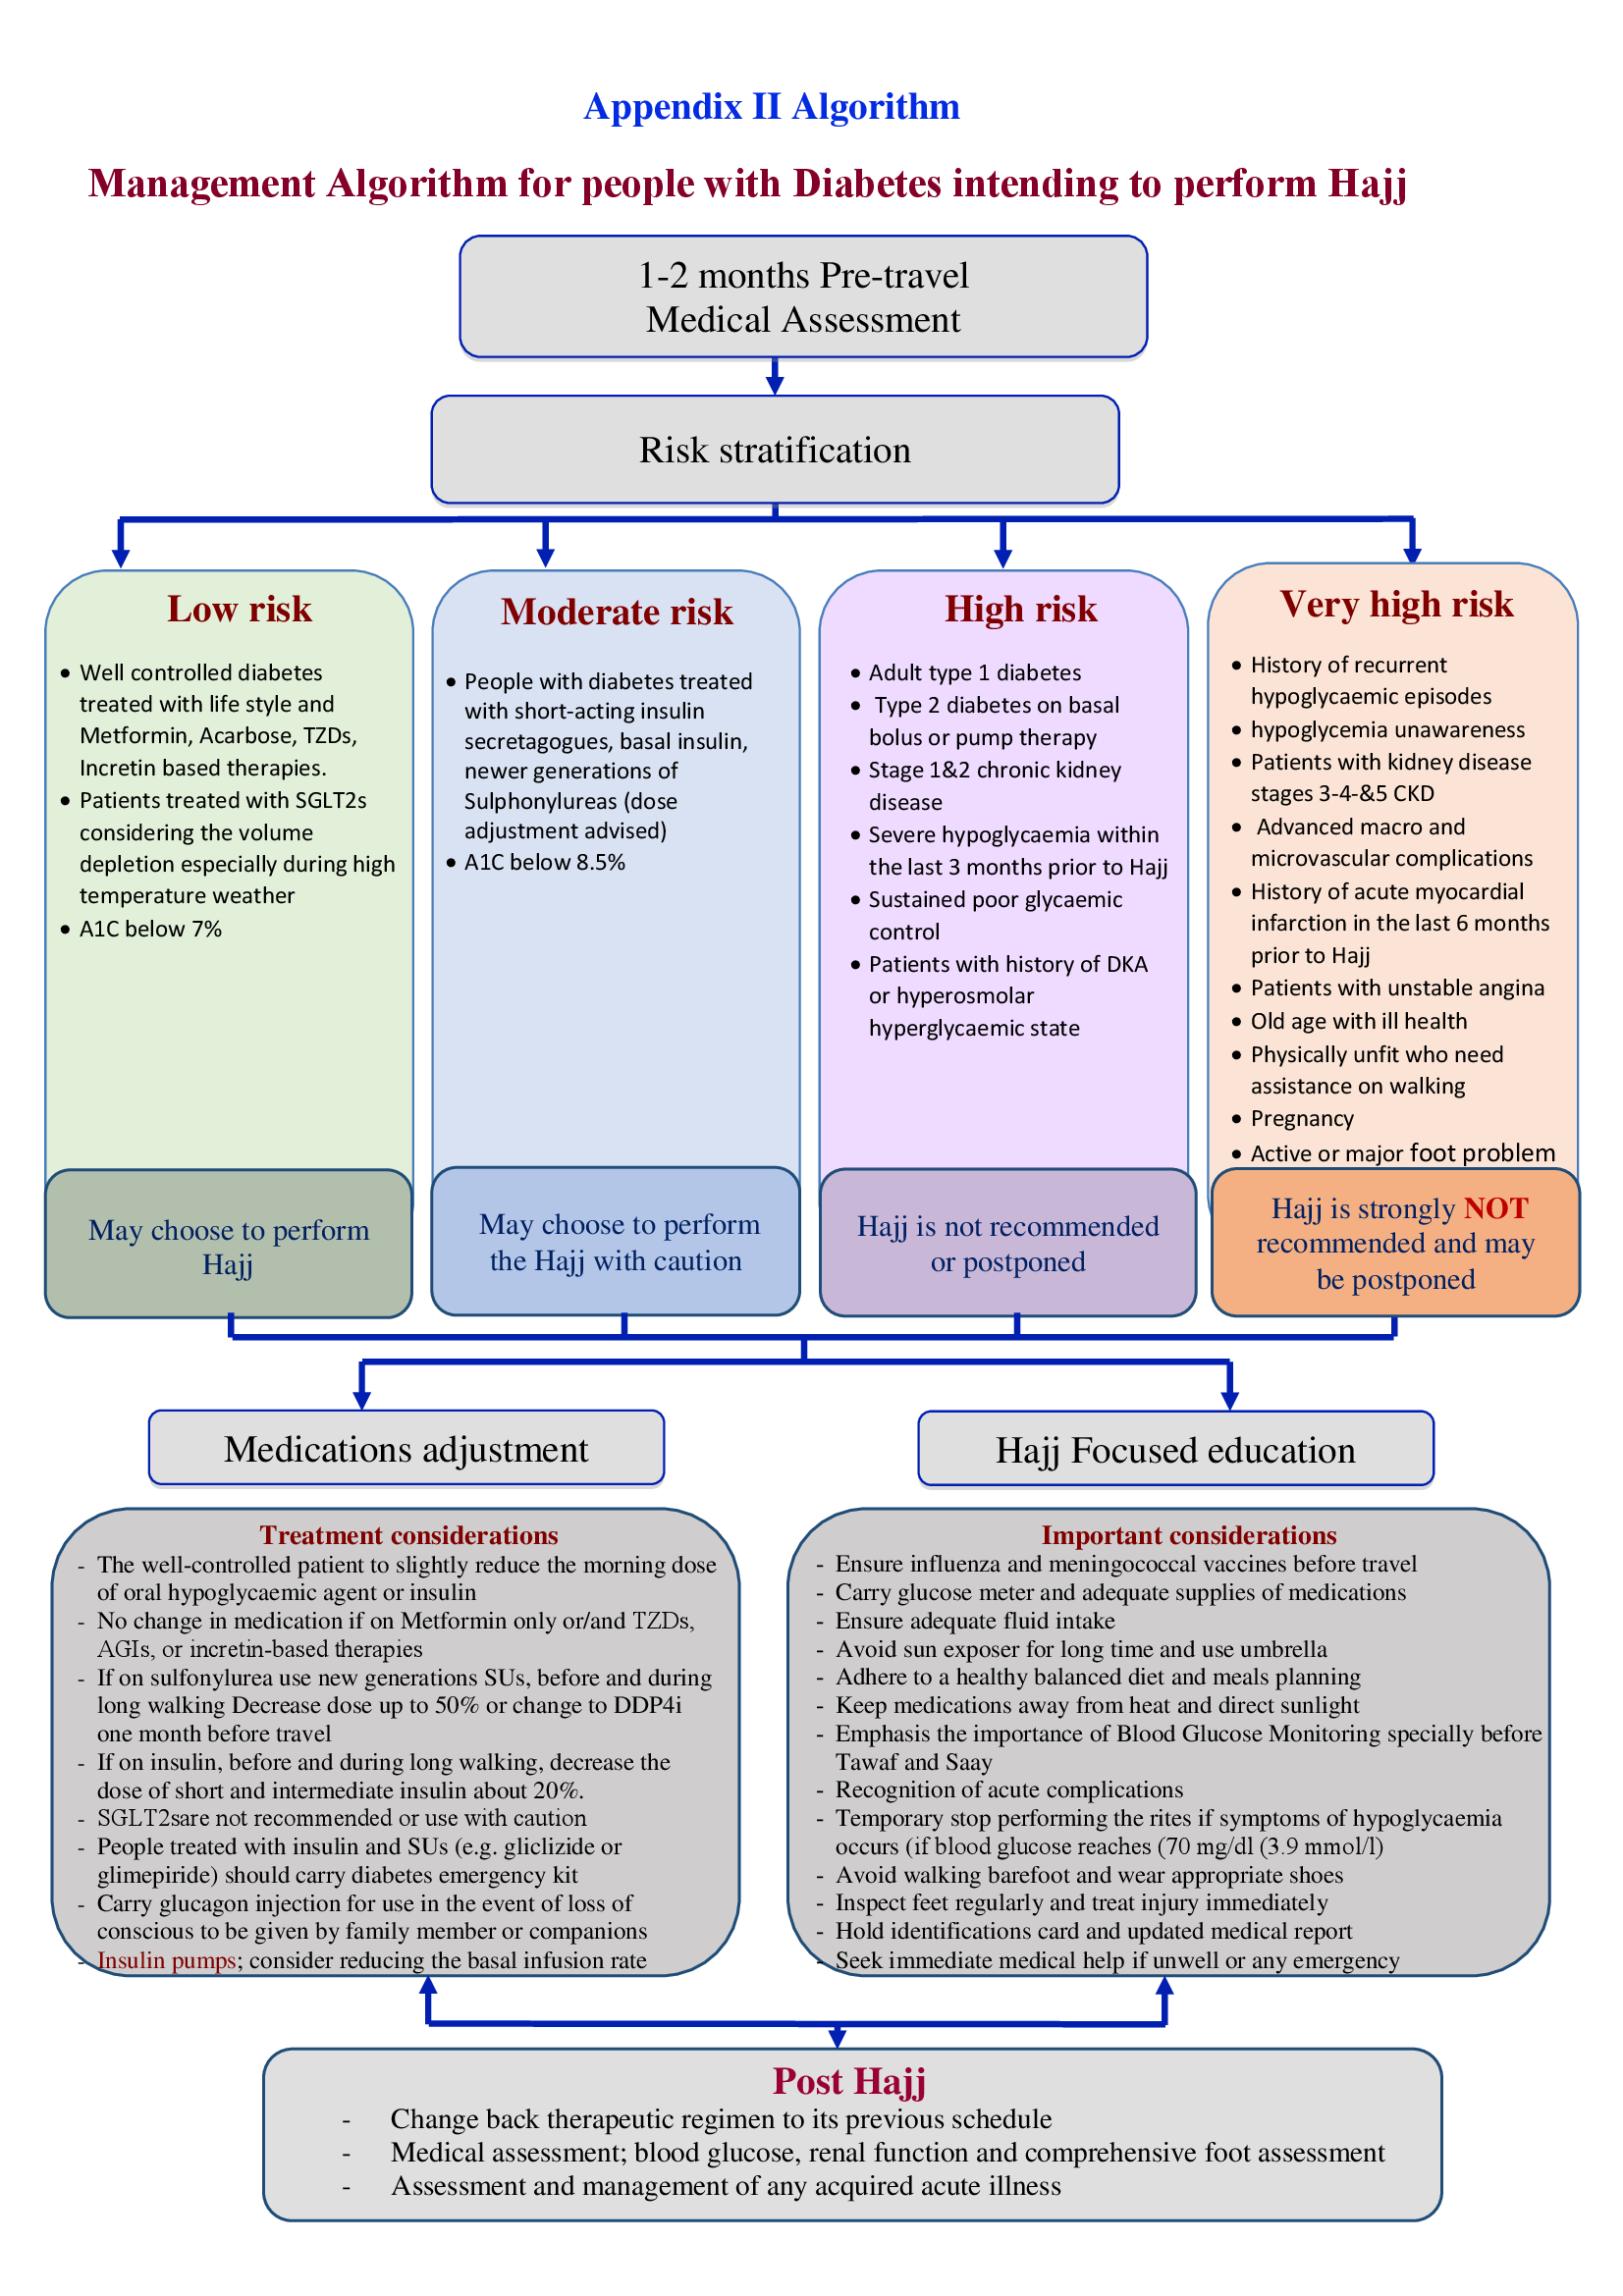 Recommendations for management of diabetes and its